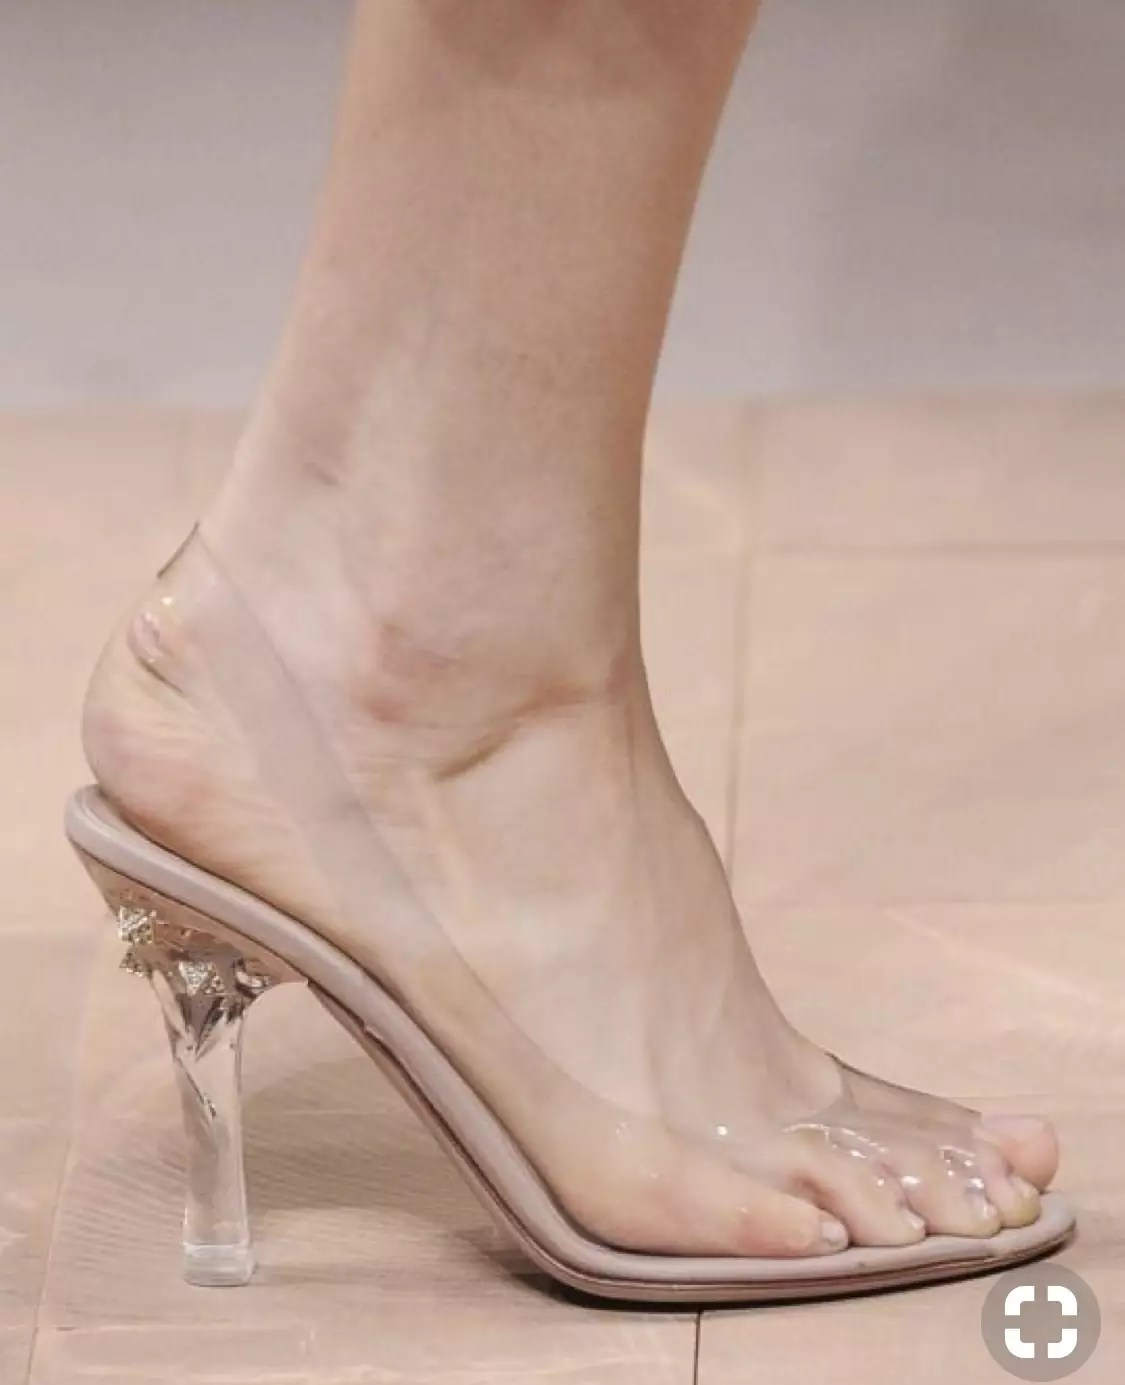 Clear Transparent Shoes? ~ Alley Girl